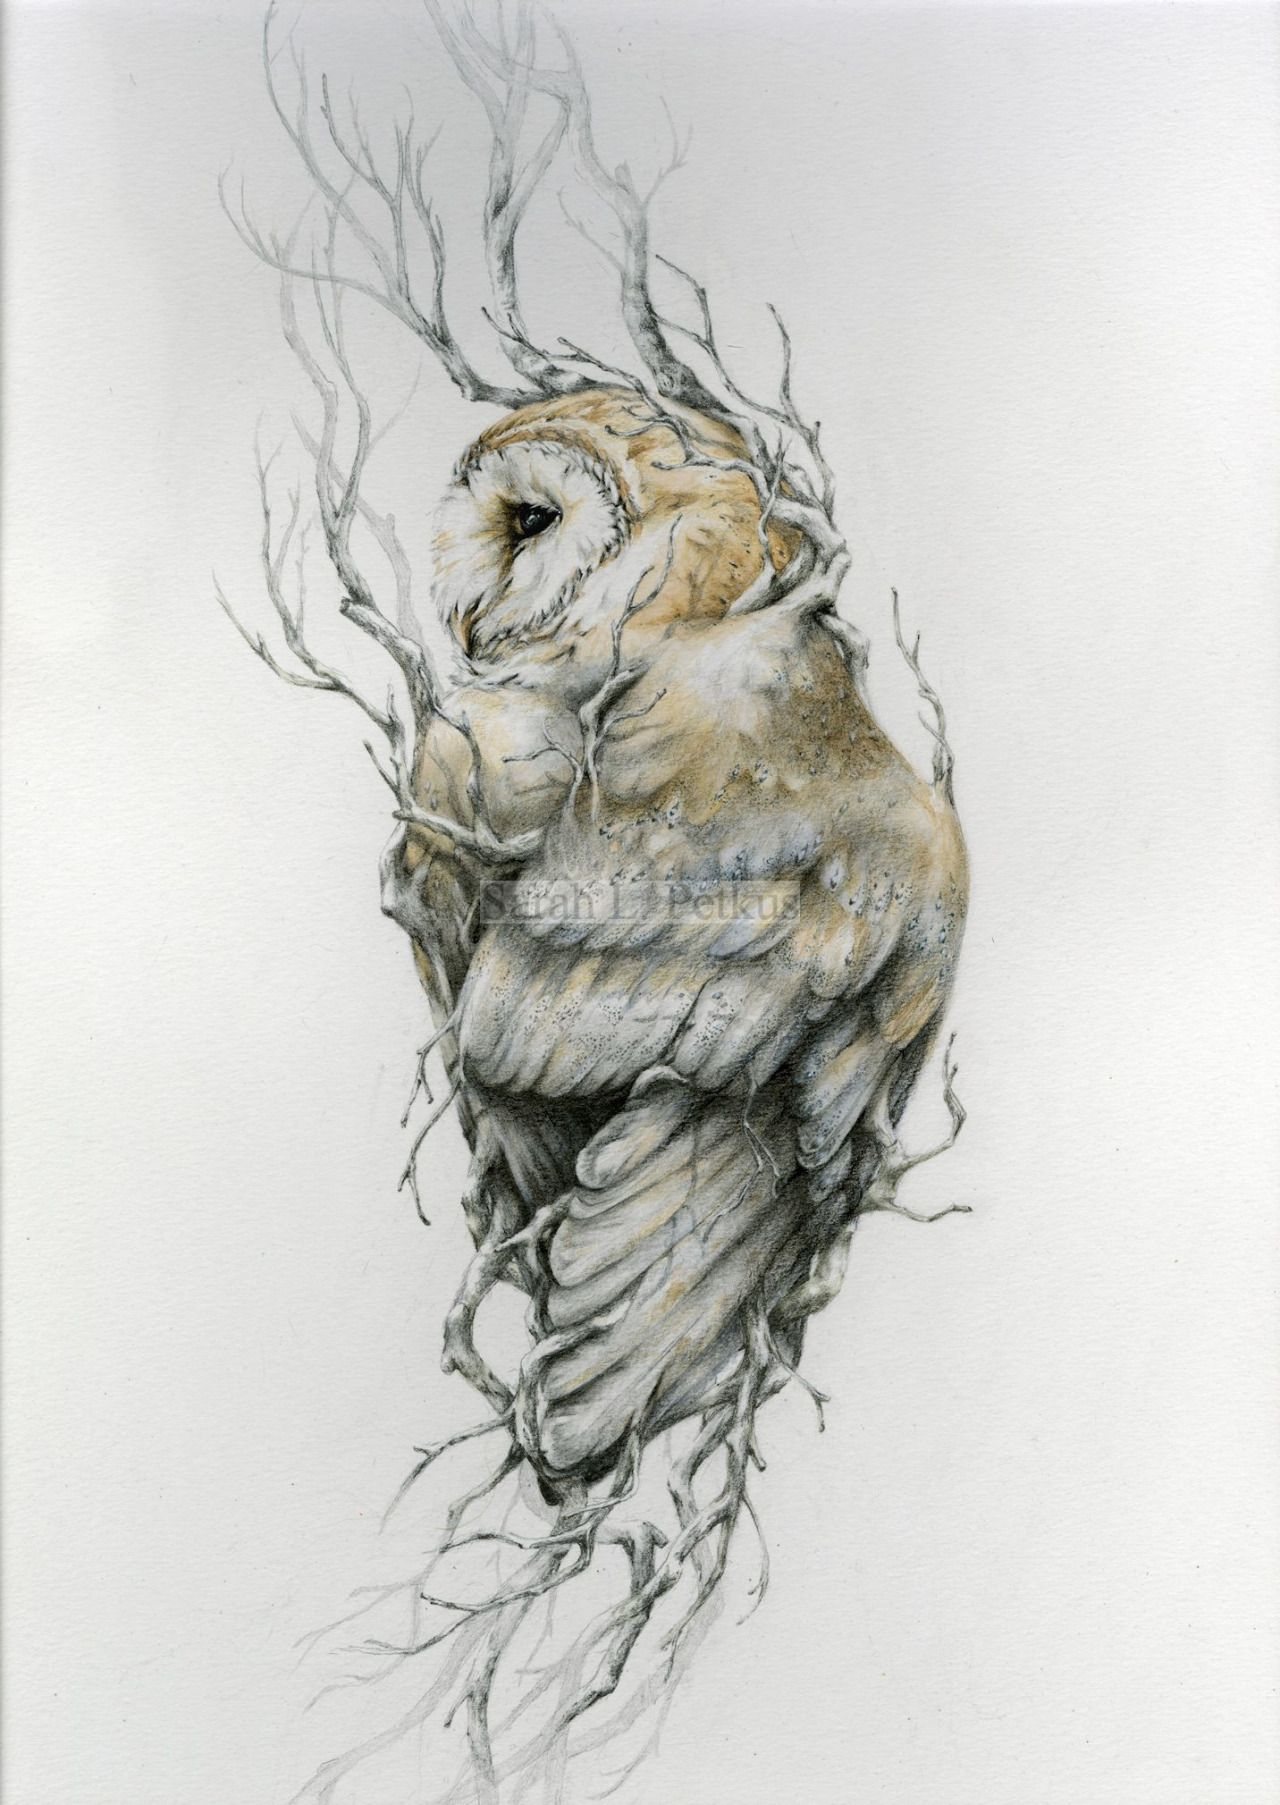 Forest lore owls drawing owl art tattoos